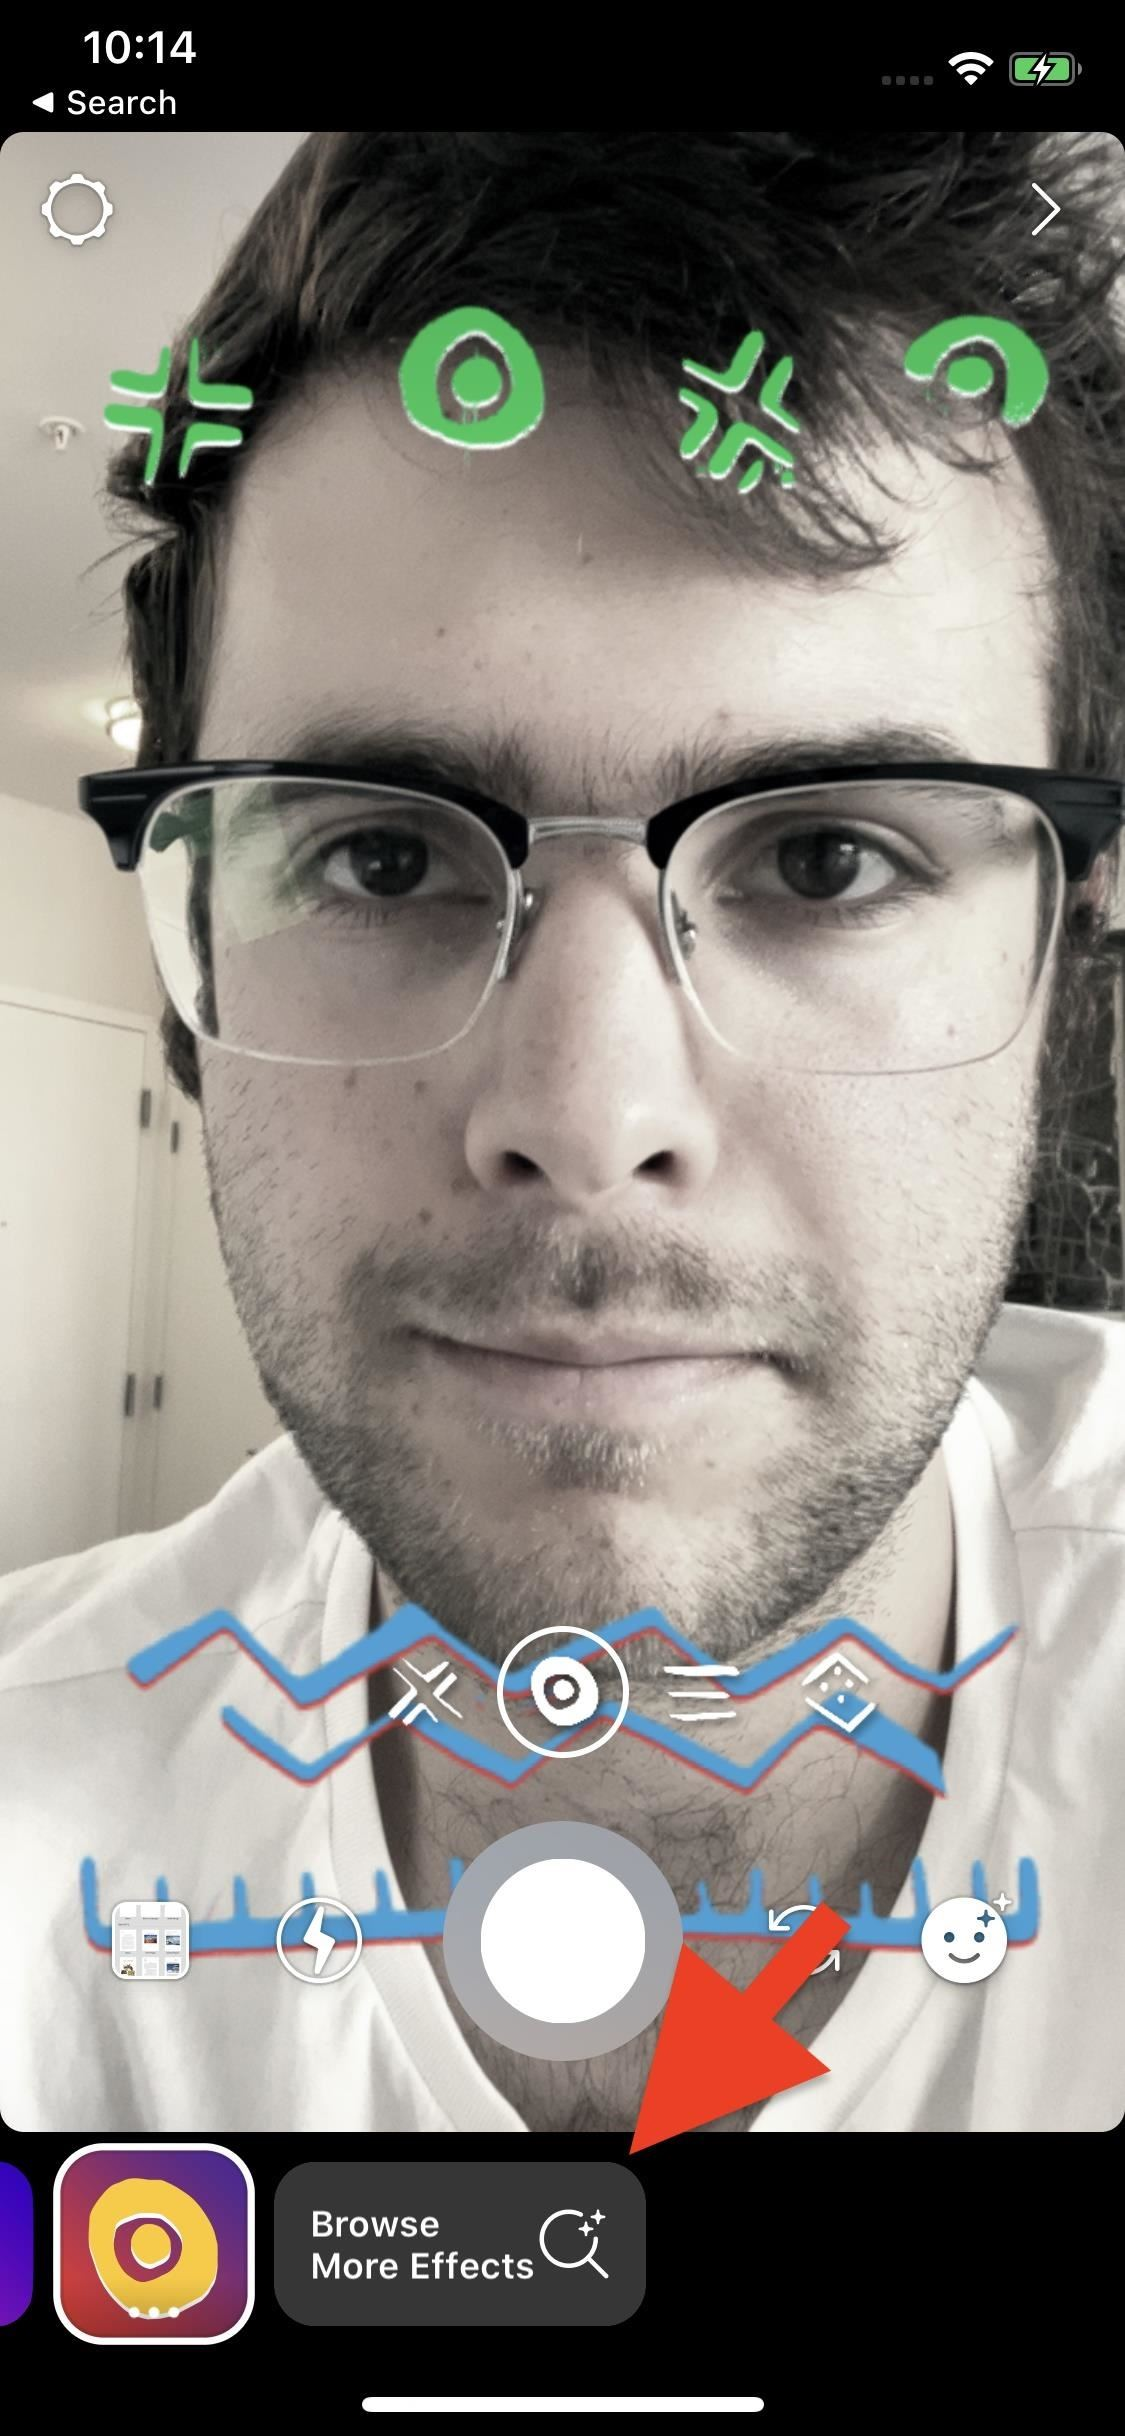 Get Unique Face Filters by Following AR Creators on Instagram